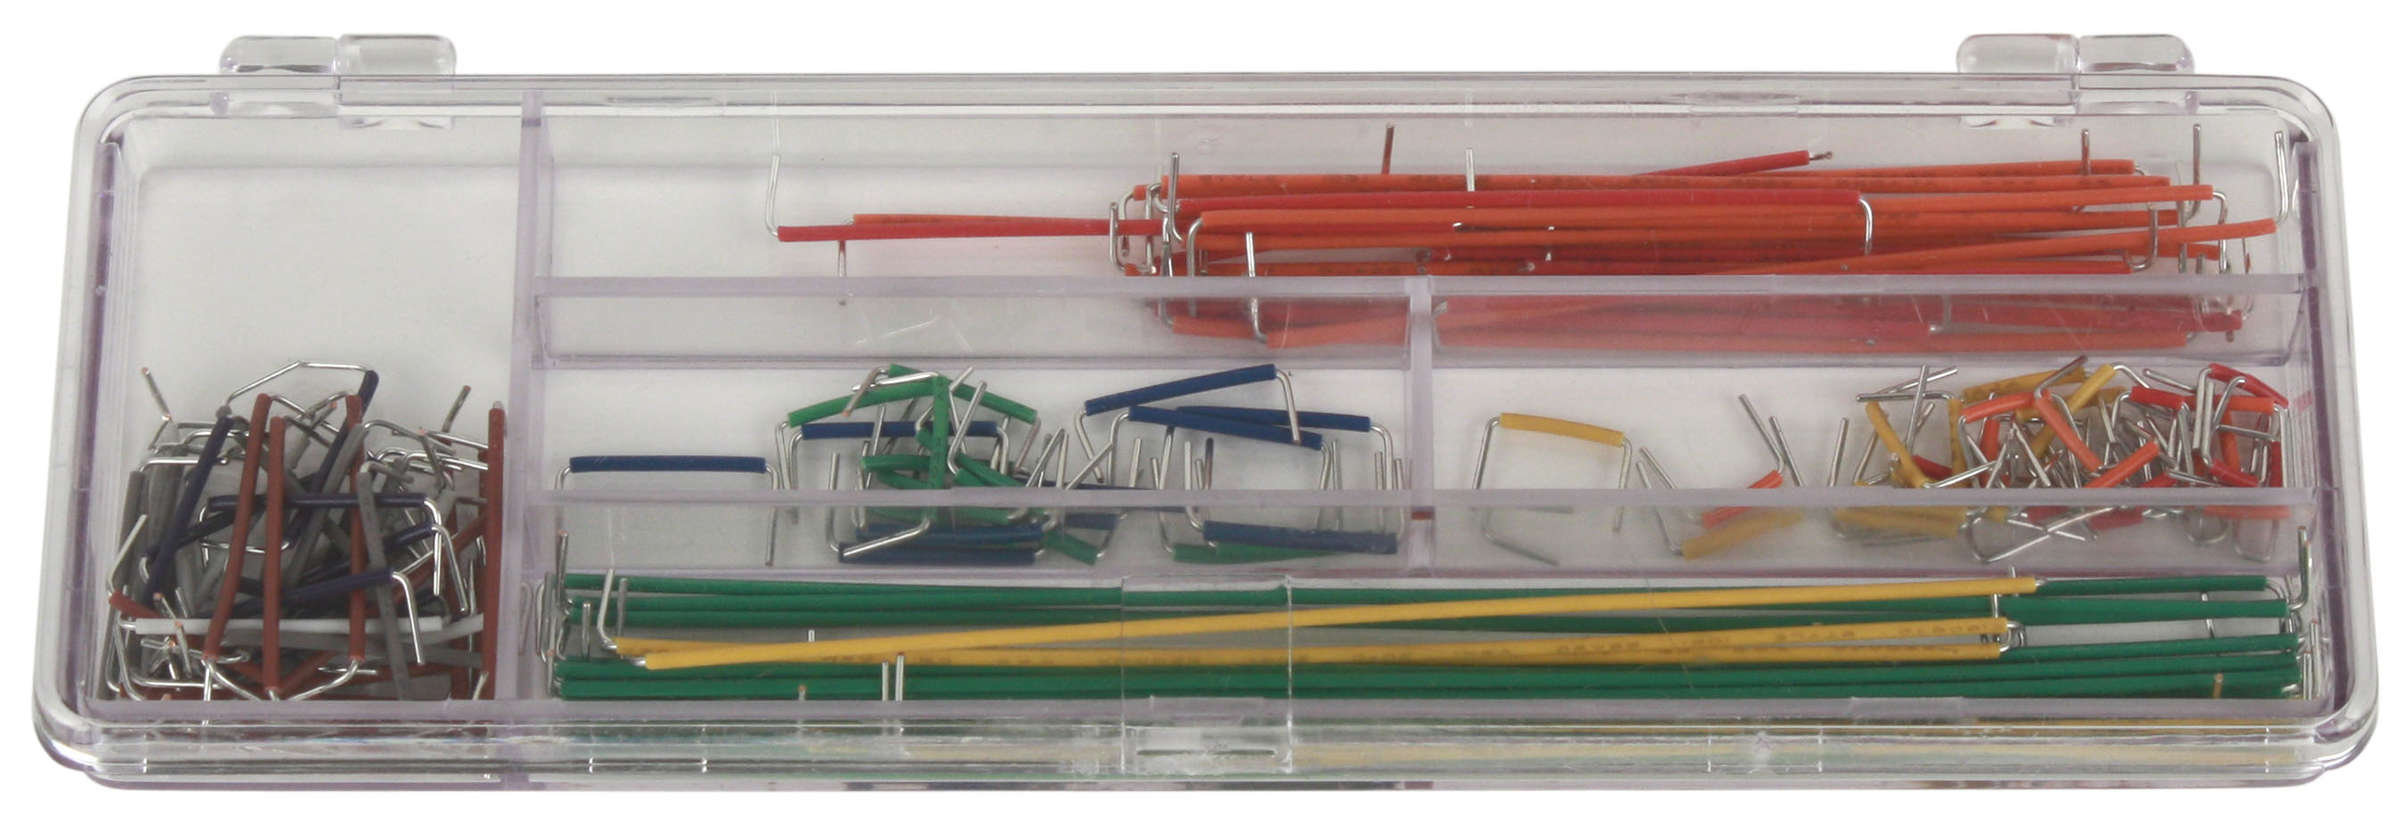 Global Specialties WK-2 Jumper Wire Kit, 140 Pcs Photo